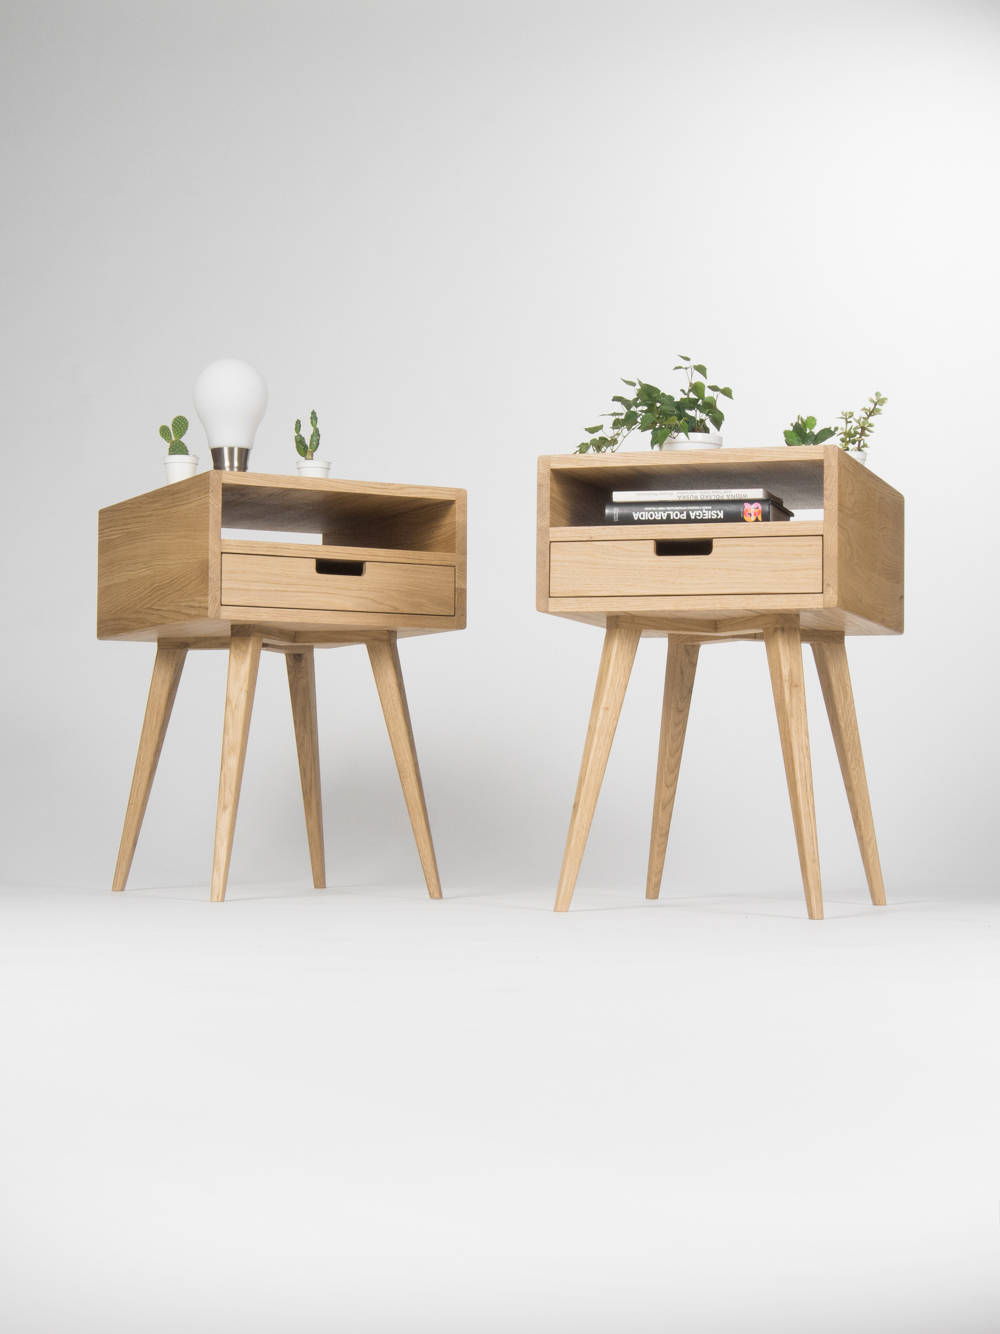 Image of: Pair Of Mid Century Modern Nightstand Bedside Table End Table With Solid Oak Drawer And Open Shelf Oak Wood Sold By Mo Woodwork On Storenvy